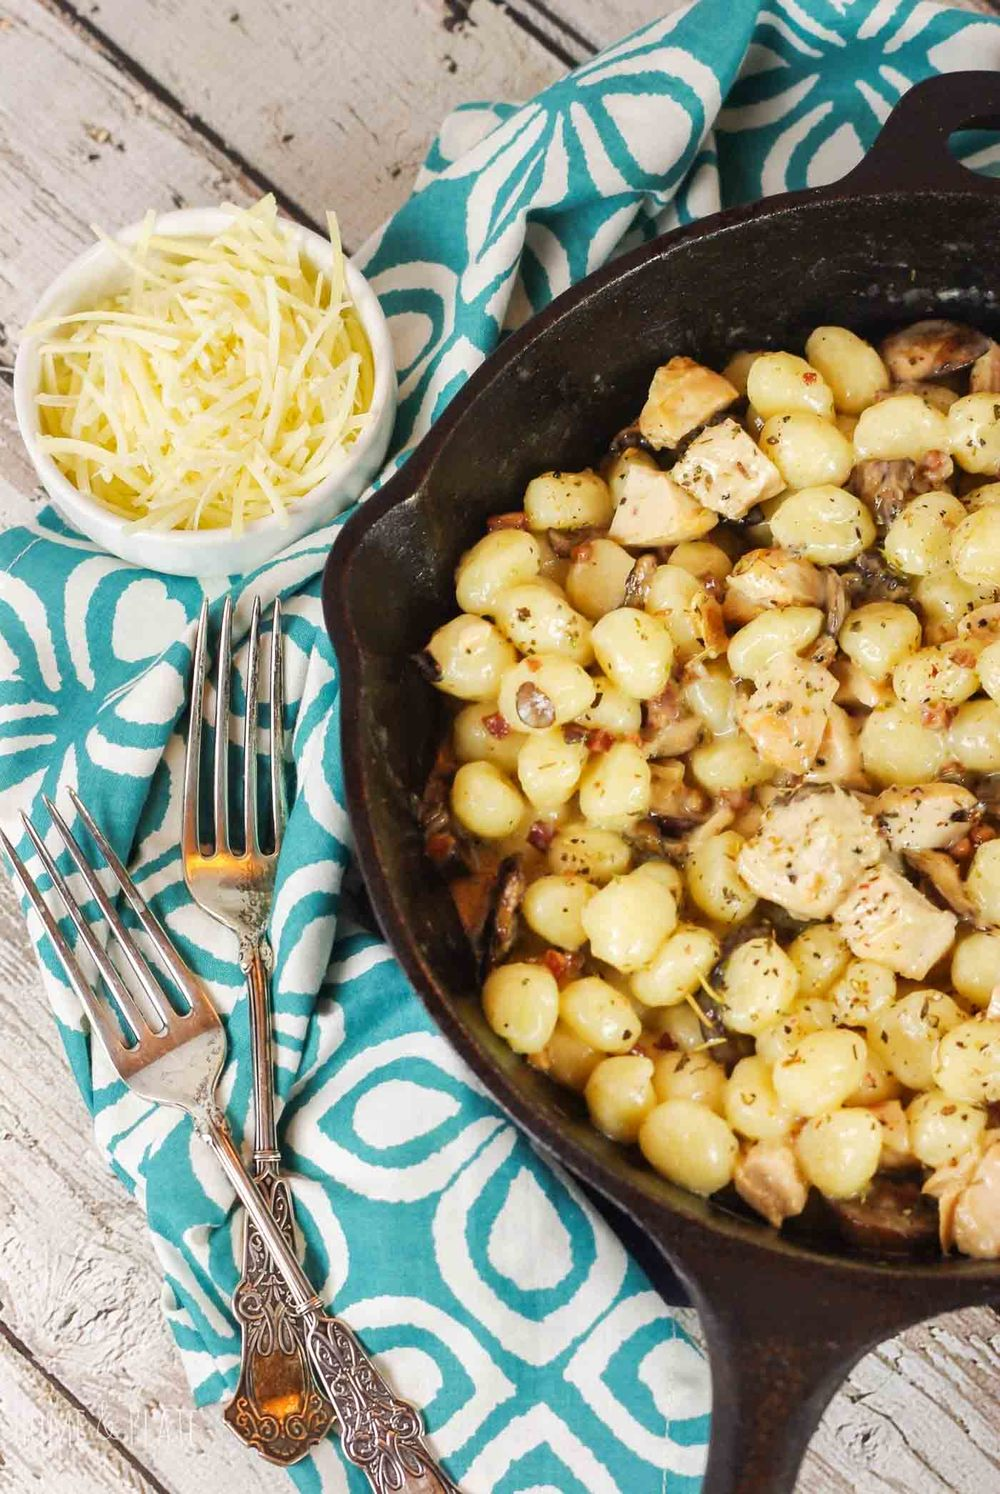 15-Minute Mushroom Pancetta Gnocchi | www.homeandplate.com | Creamy pillows of pasta that hint of mashed potatoes, earthy mushrooms and salty pancetta, swirled in a light and creamy sauce.